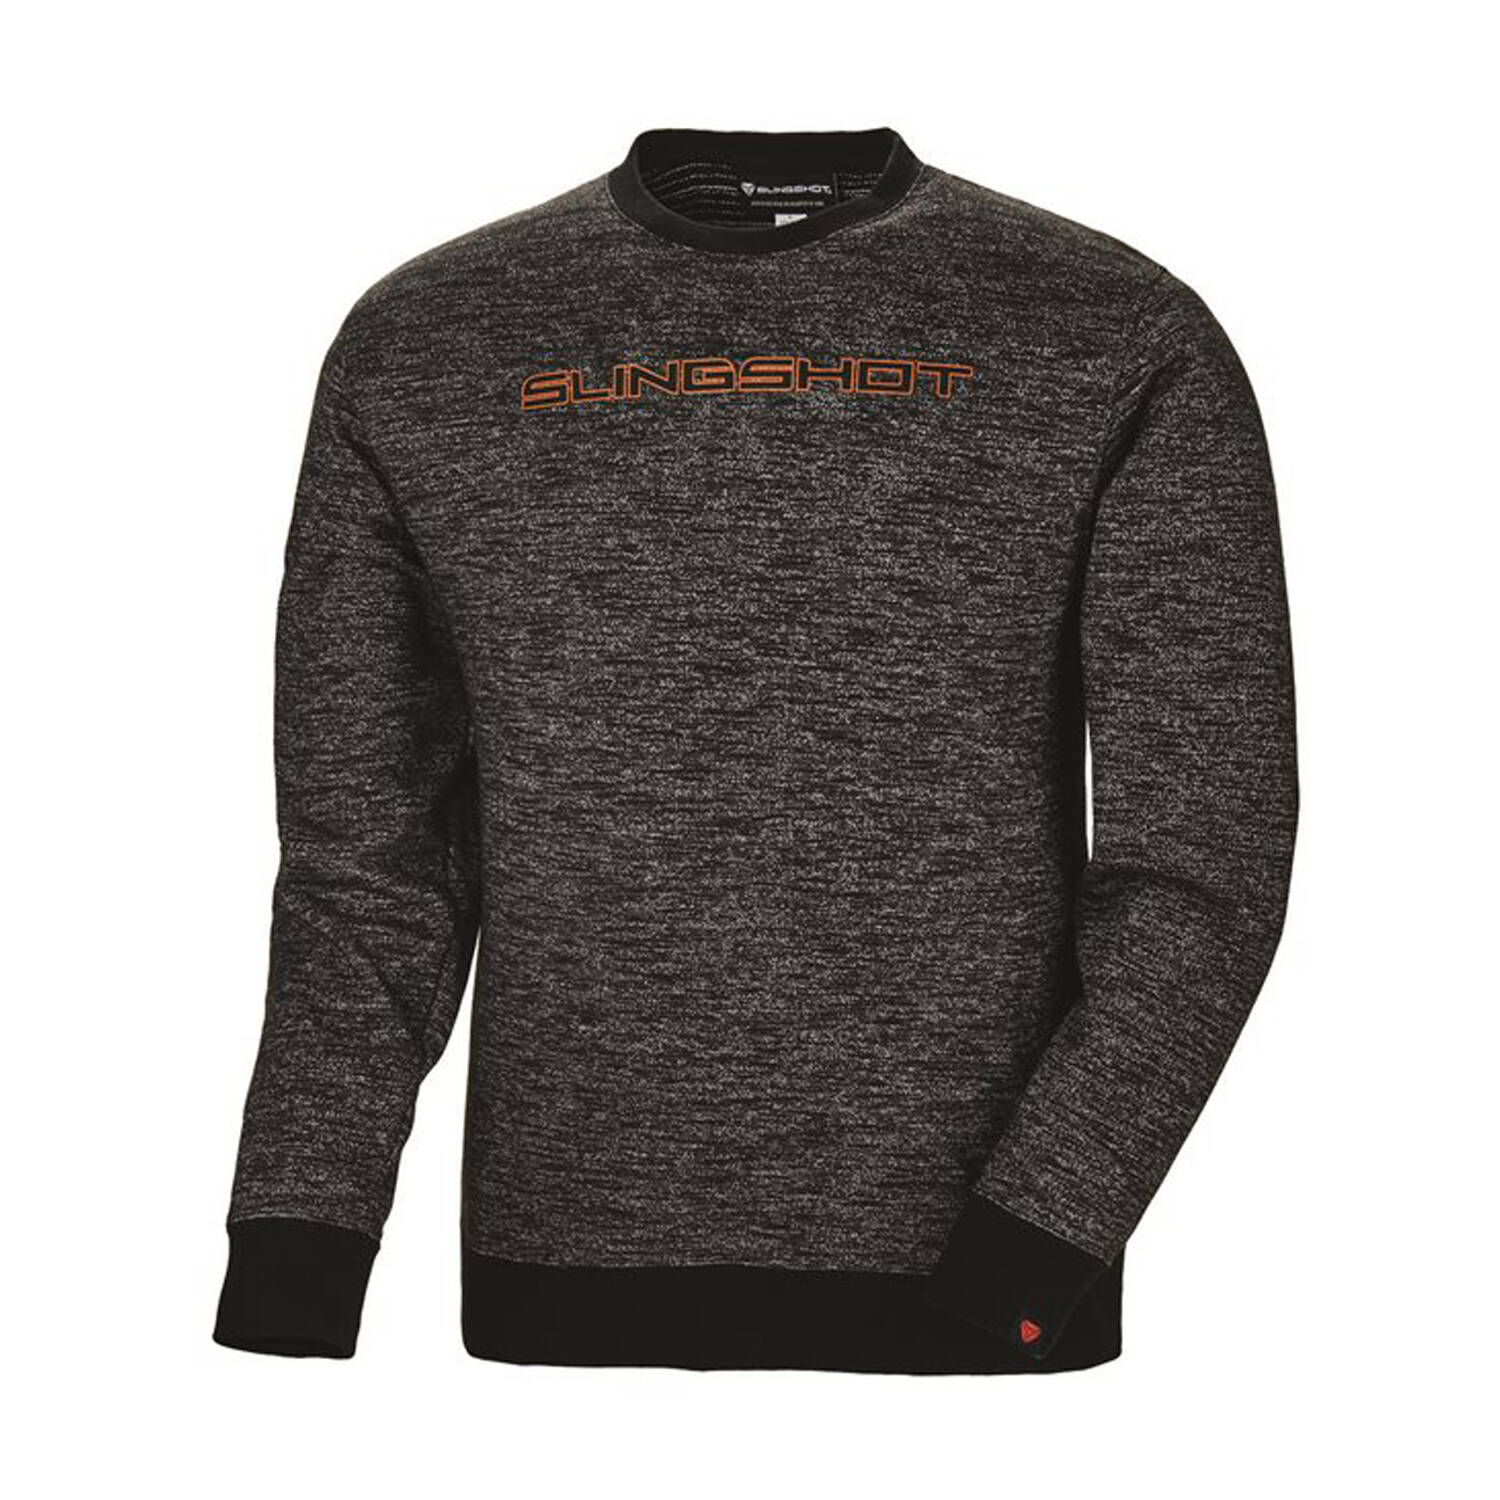 Men's Crew Sweatshirt with Slingshot® Logo, Black